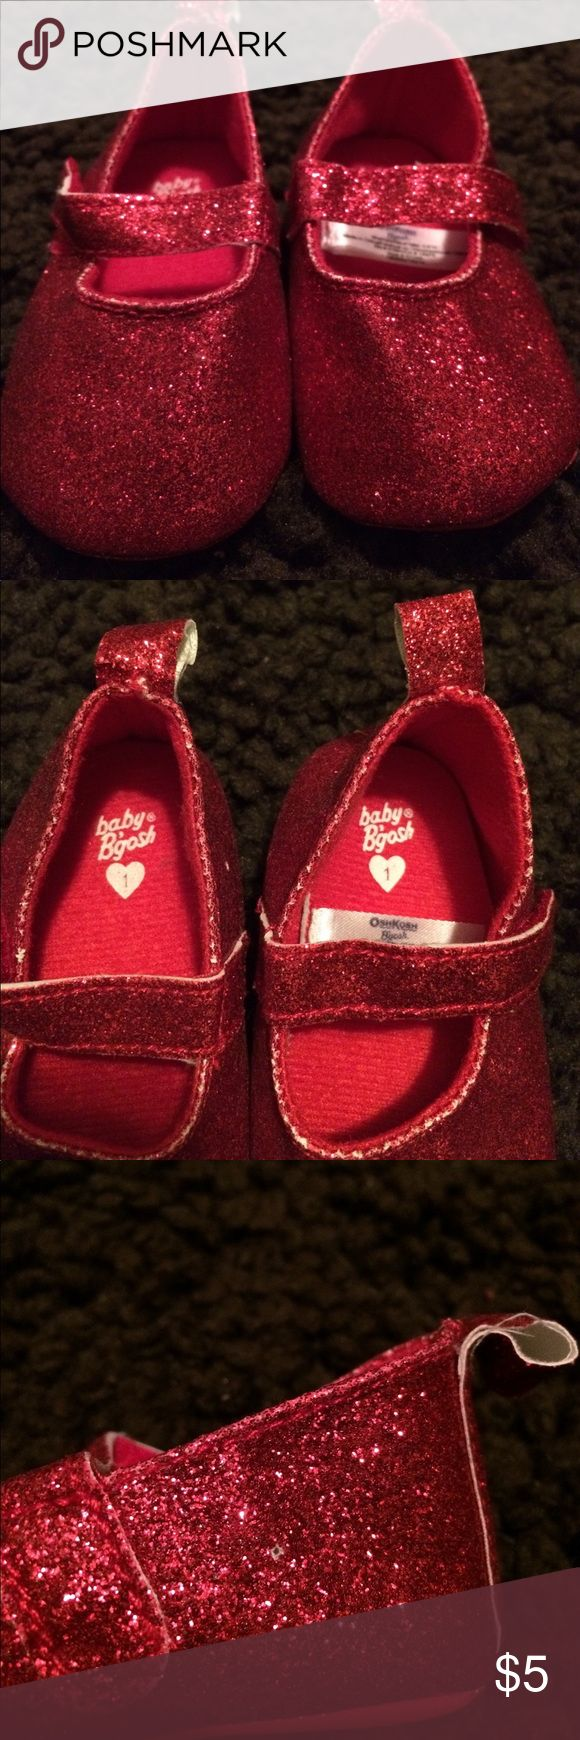 Red Glitter Shoes Brand new condition, used only for maternity photos. Each shoe has a small hole from security tag (see photo). Osh Kosh Shoes Baby & Walker